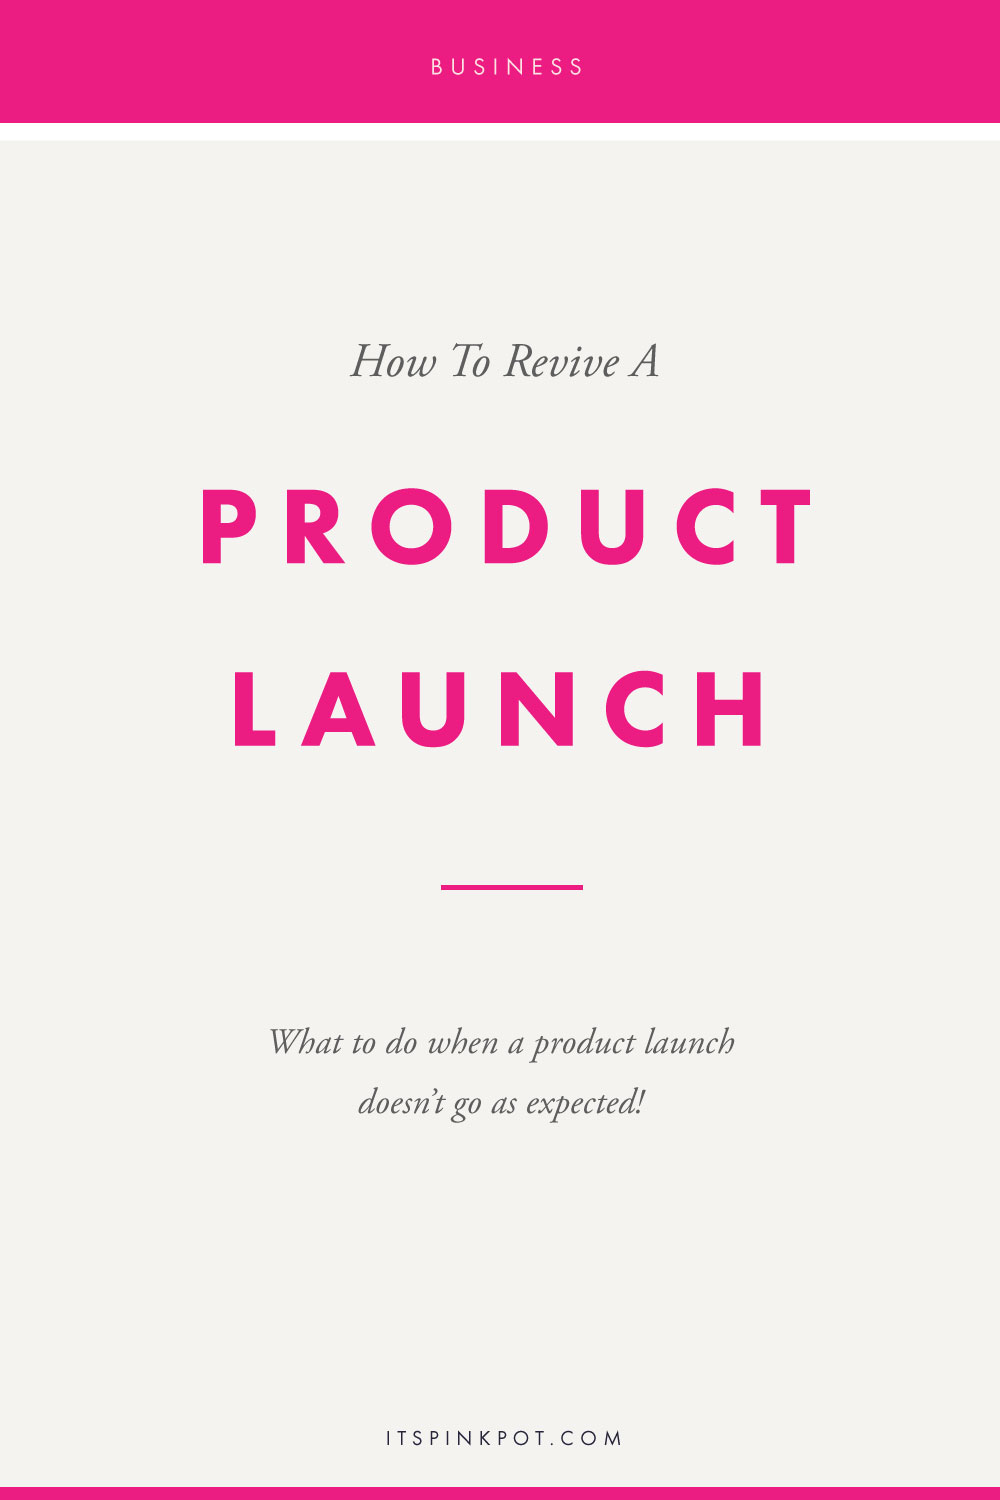 Maybe you 've had a product that you launched but din't go well, Or Maybe you are launching a new product soon or Maybe you want to create a product sometime soon. Either way, today's post is for you. I am outlining all the things I tweaked which helped make my recent course launch much better compared to my previous one. Click here to read the full story >>